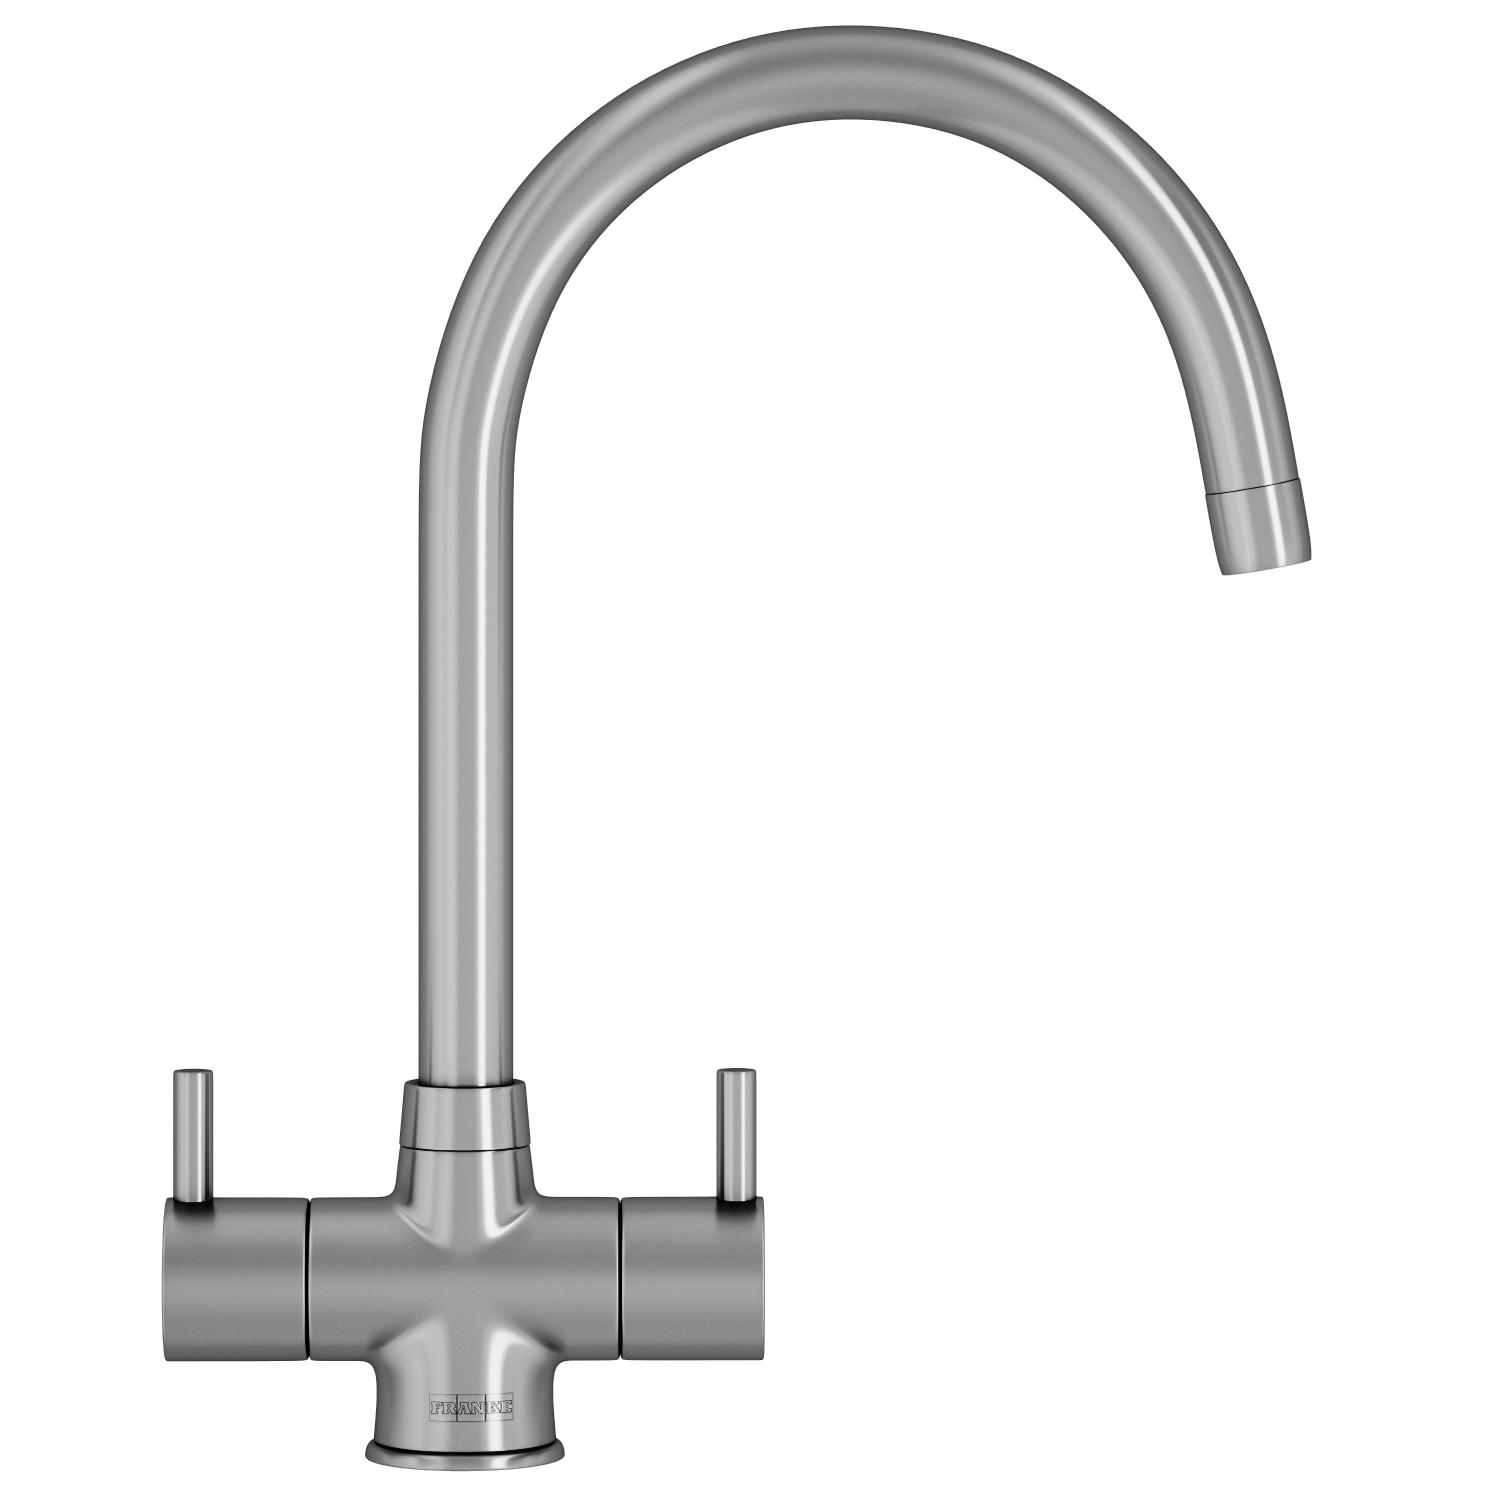 ... taps kitchen mixer taps franke athena kitchen sink mixer tap silksteel